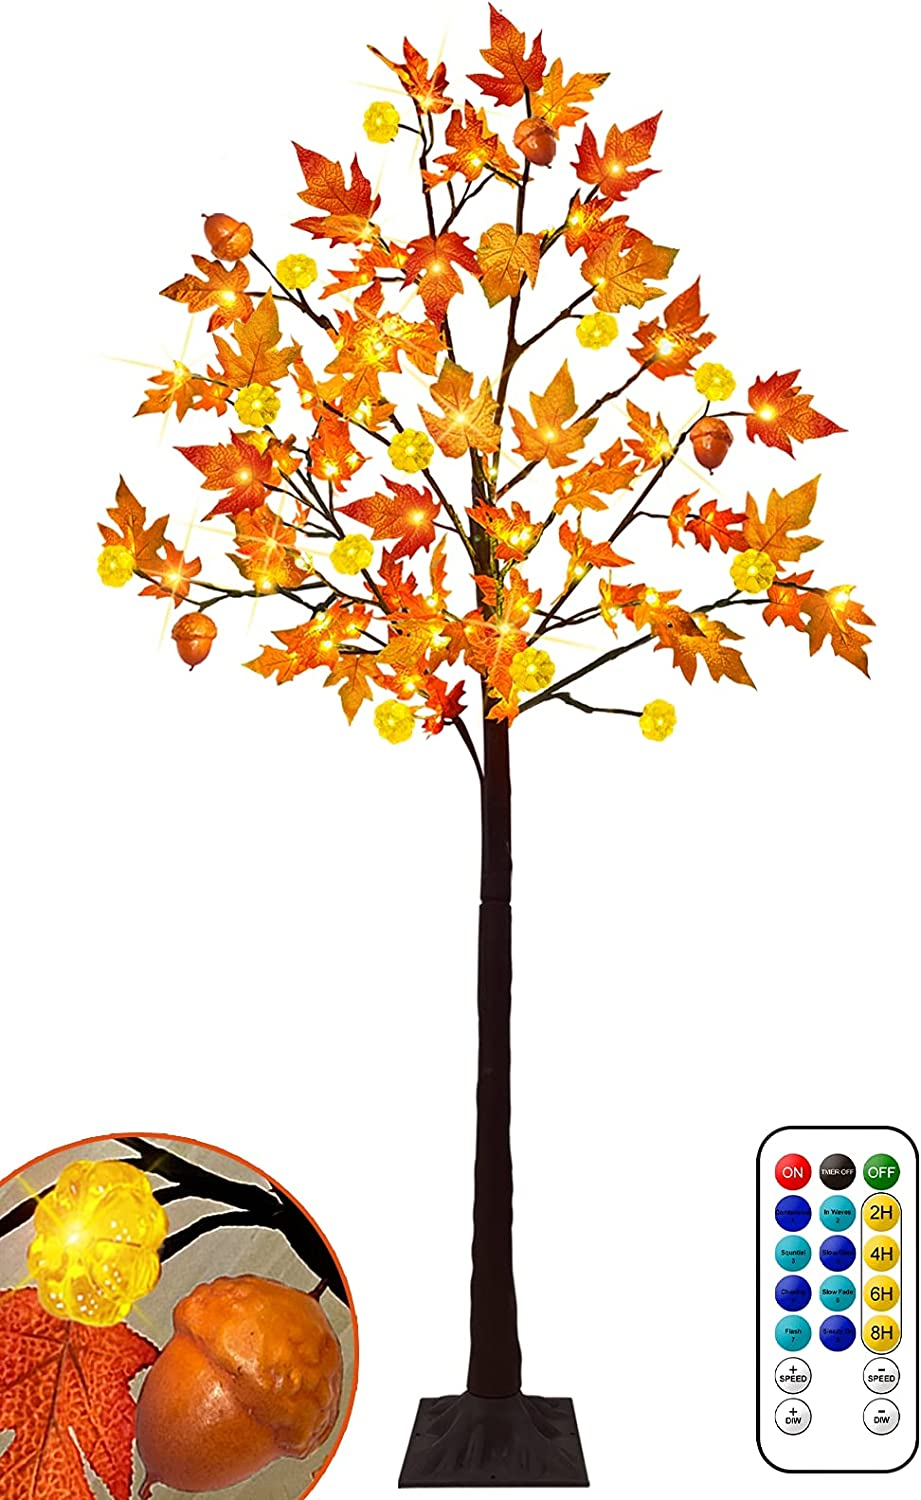 6Ft Tall Prelit Fall Maple Tree Decor, 117LED with 12 Pumpkins & Acorn & Timer 8 Flashing Mode Remote Control Artificial Maple Tree Fall Decor Home Indoor Outdoor Halloween Autumn Thanksgiving Decor